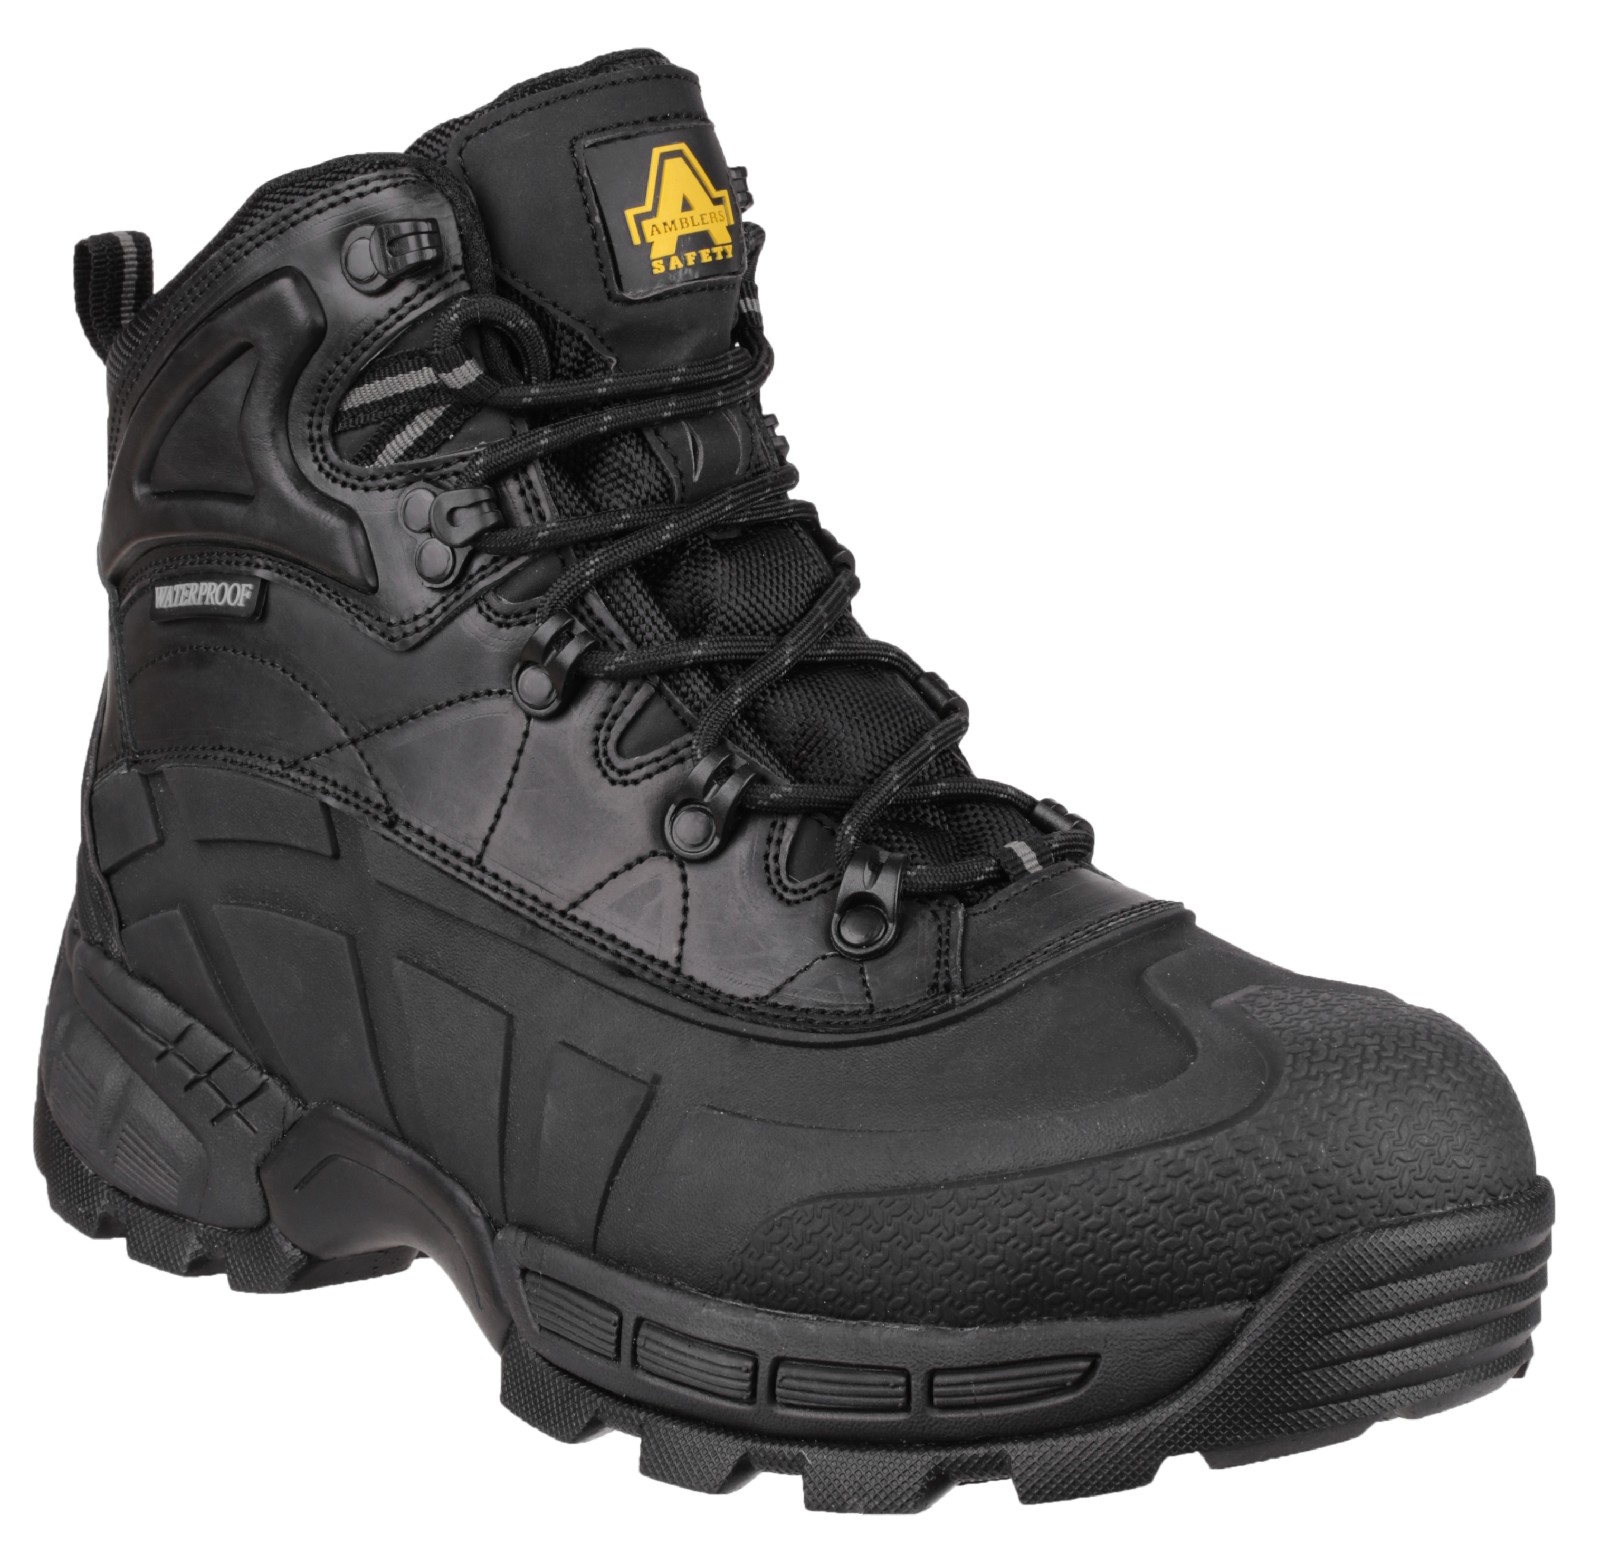 Amblers FS430 Orca S3 Waterproof Safety